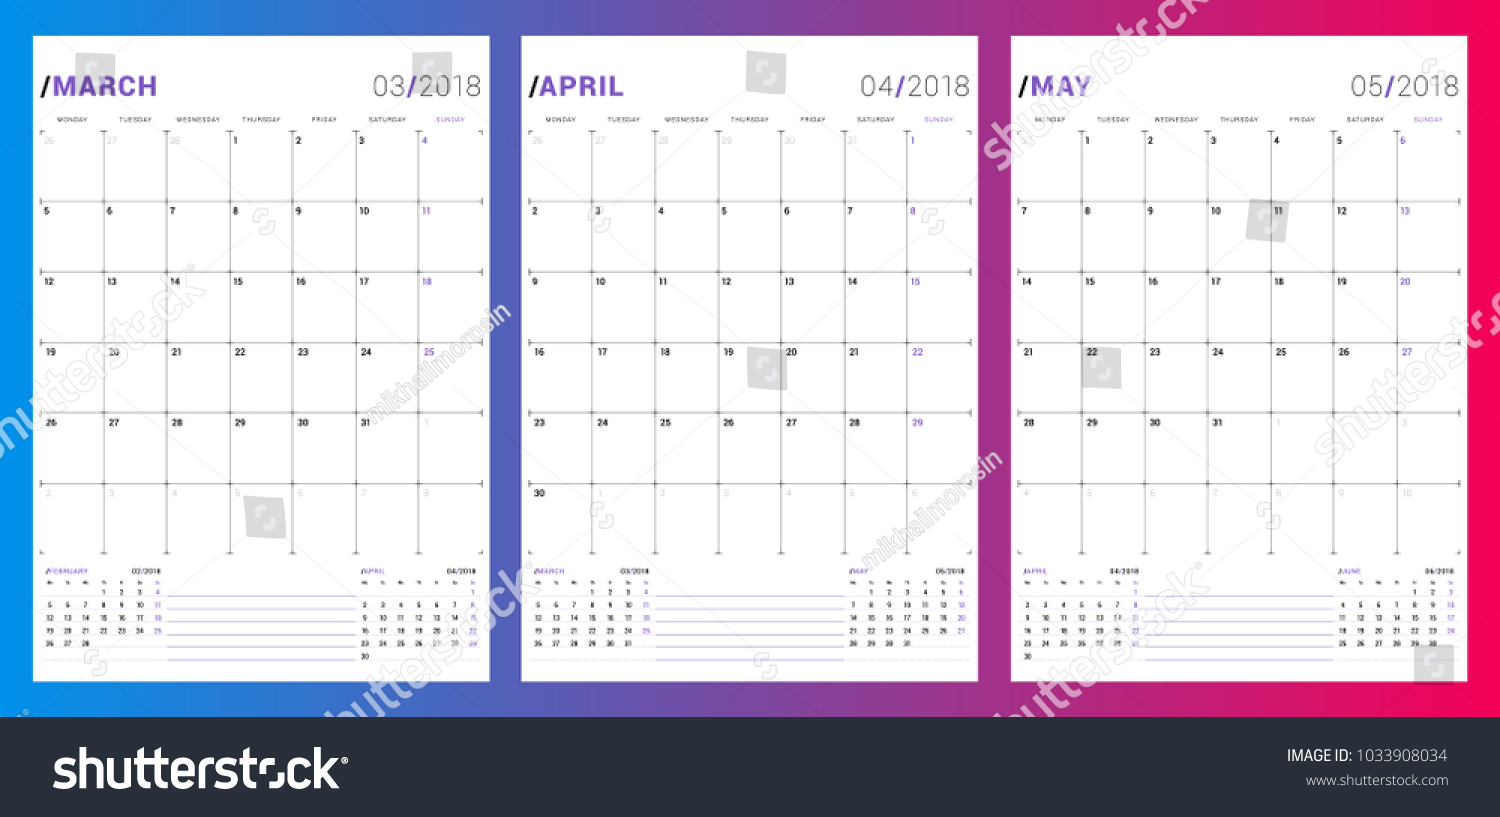 afe7210ff246 Calendar Planner Template Spring 2018 March Stock Vector (Royalty ...